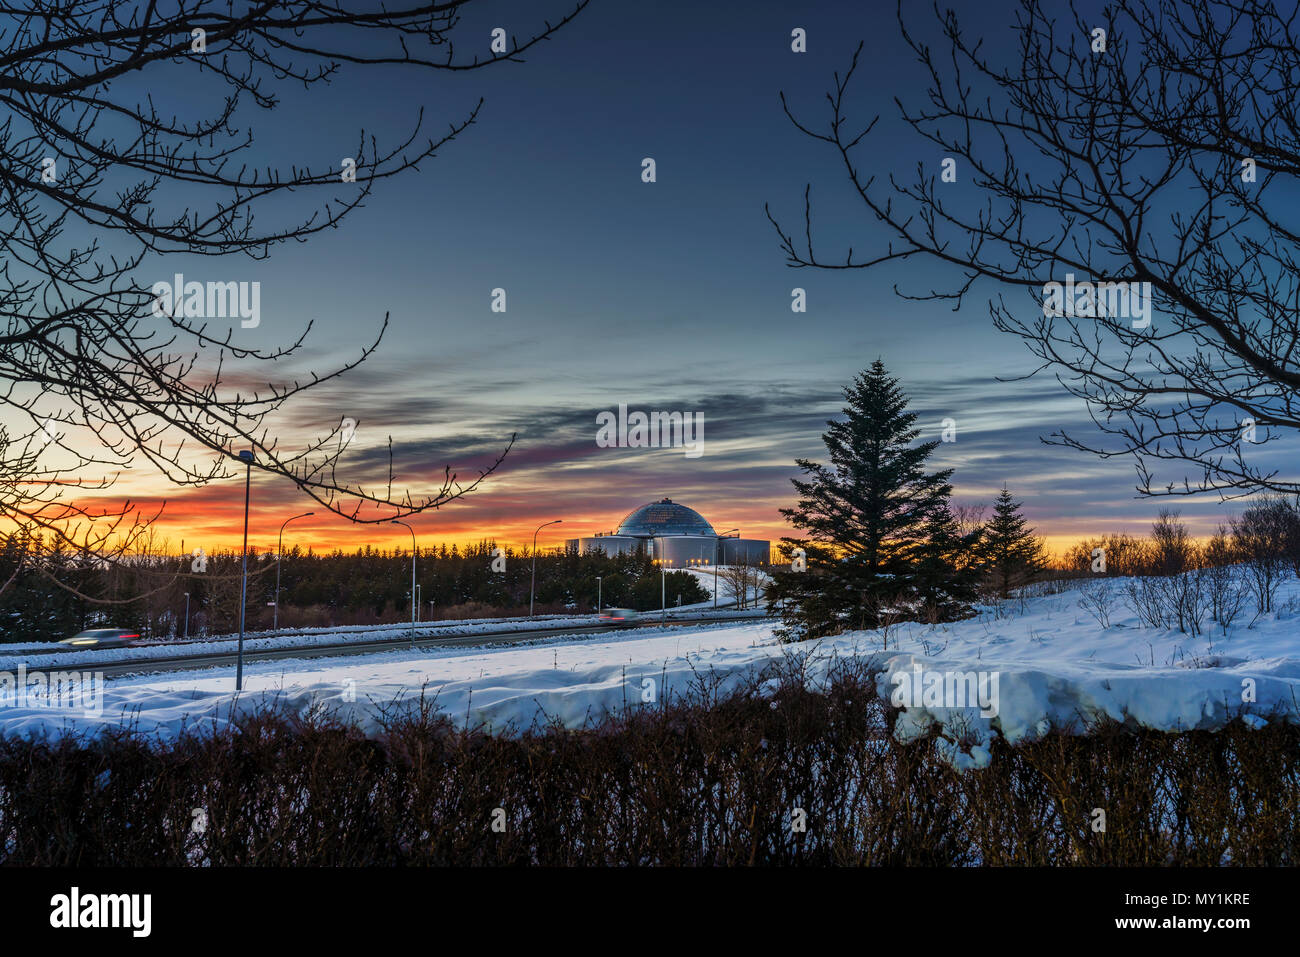 Perlan (The Pearl) at Sunset, Wintertime, Reykjavik, Iceland - Stock Image